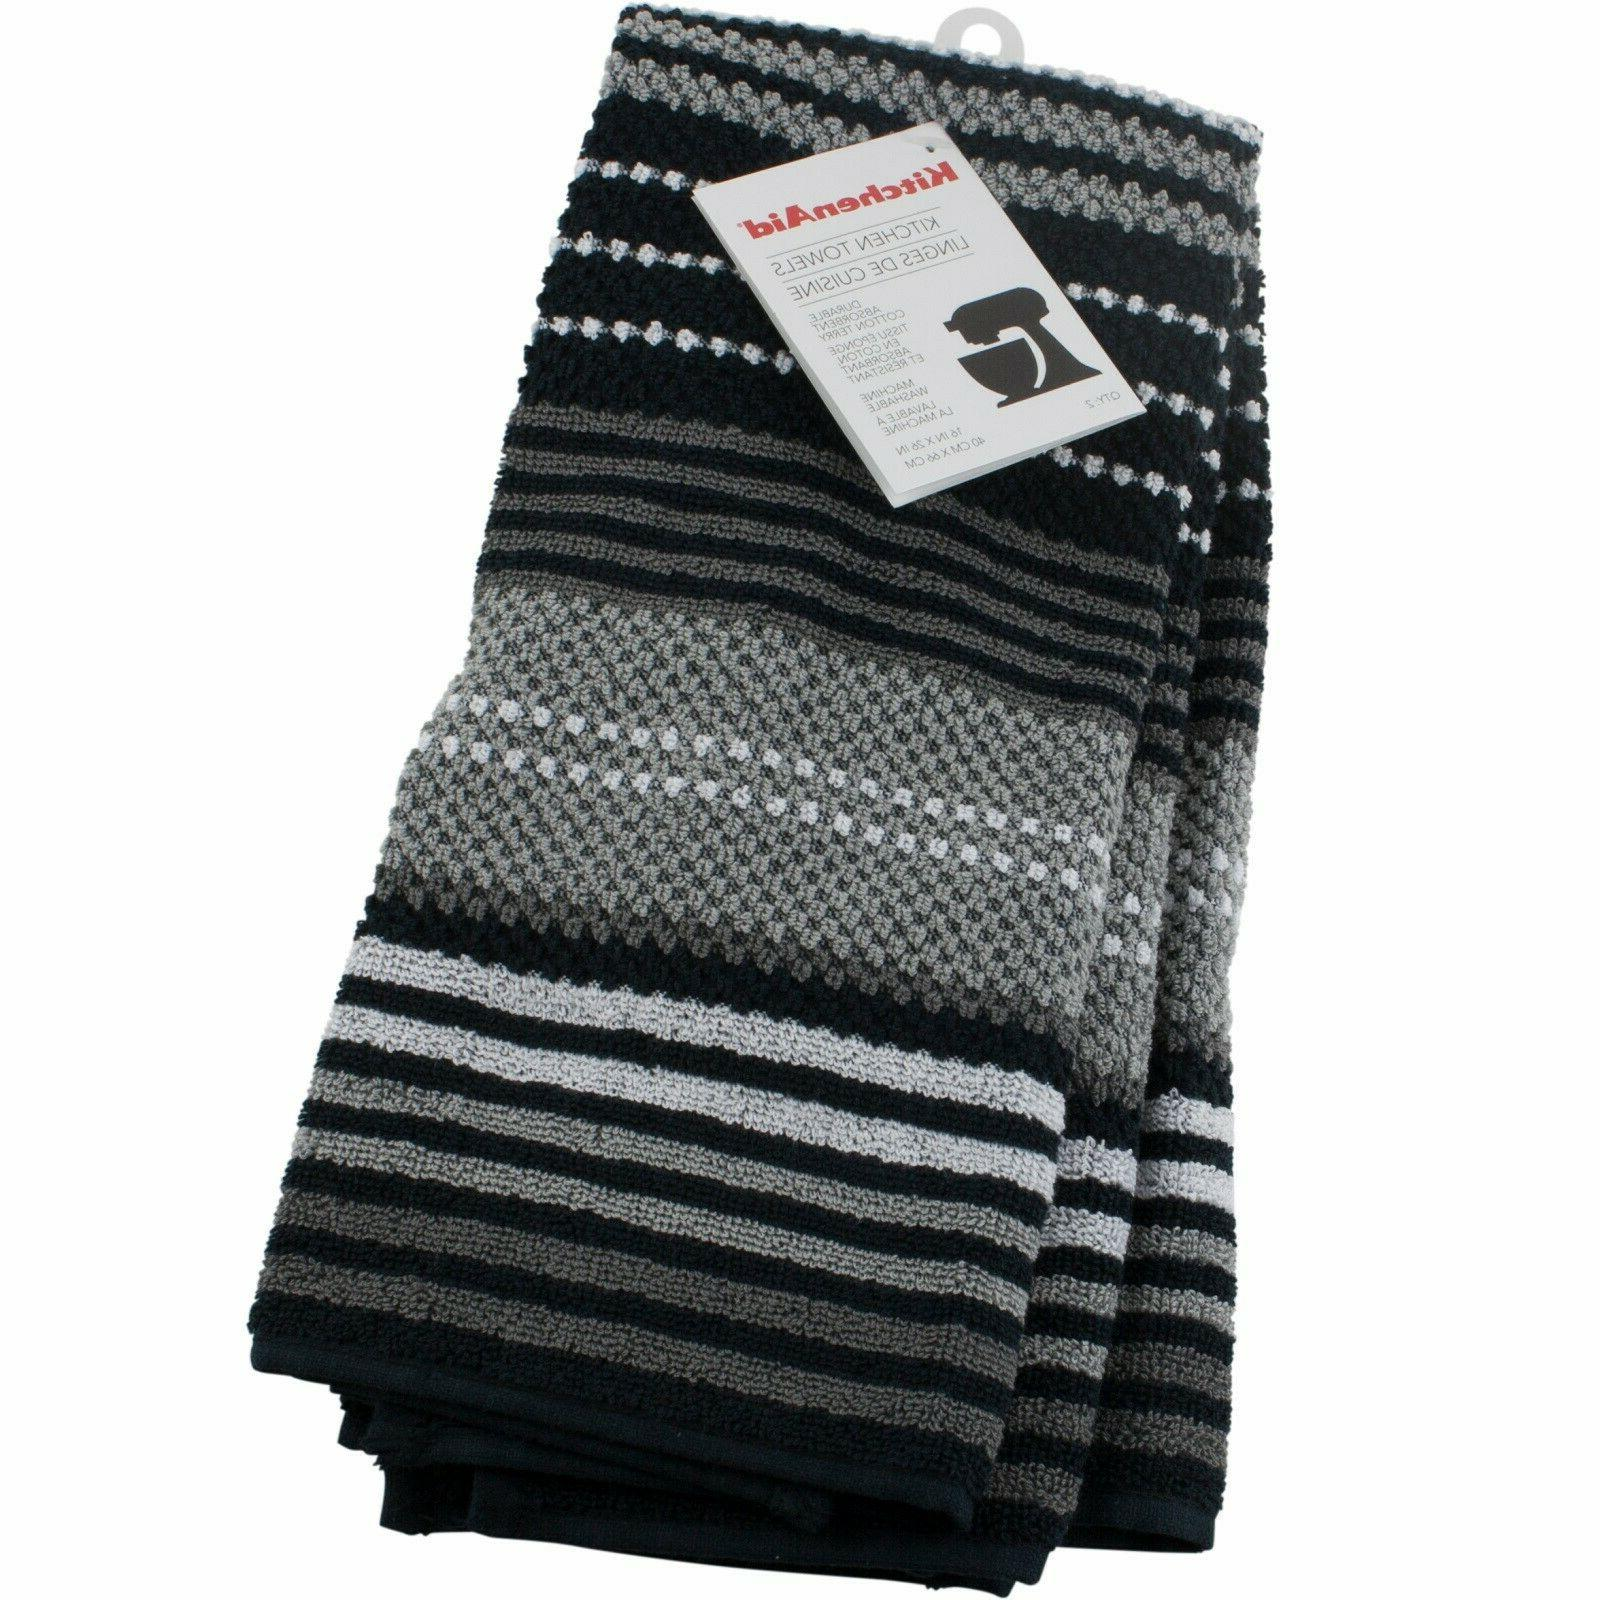 black kitchen towels 2 pack durable absorbent